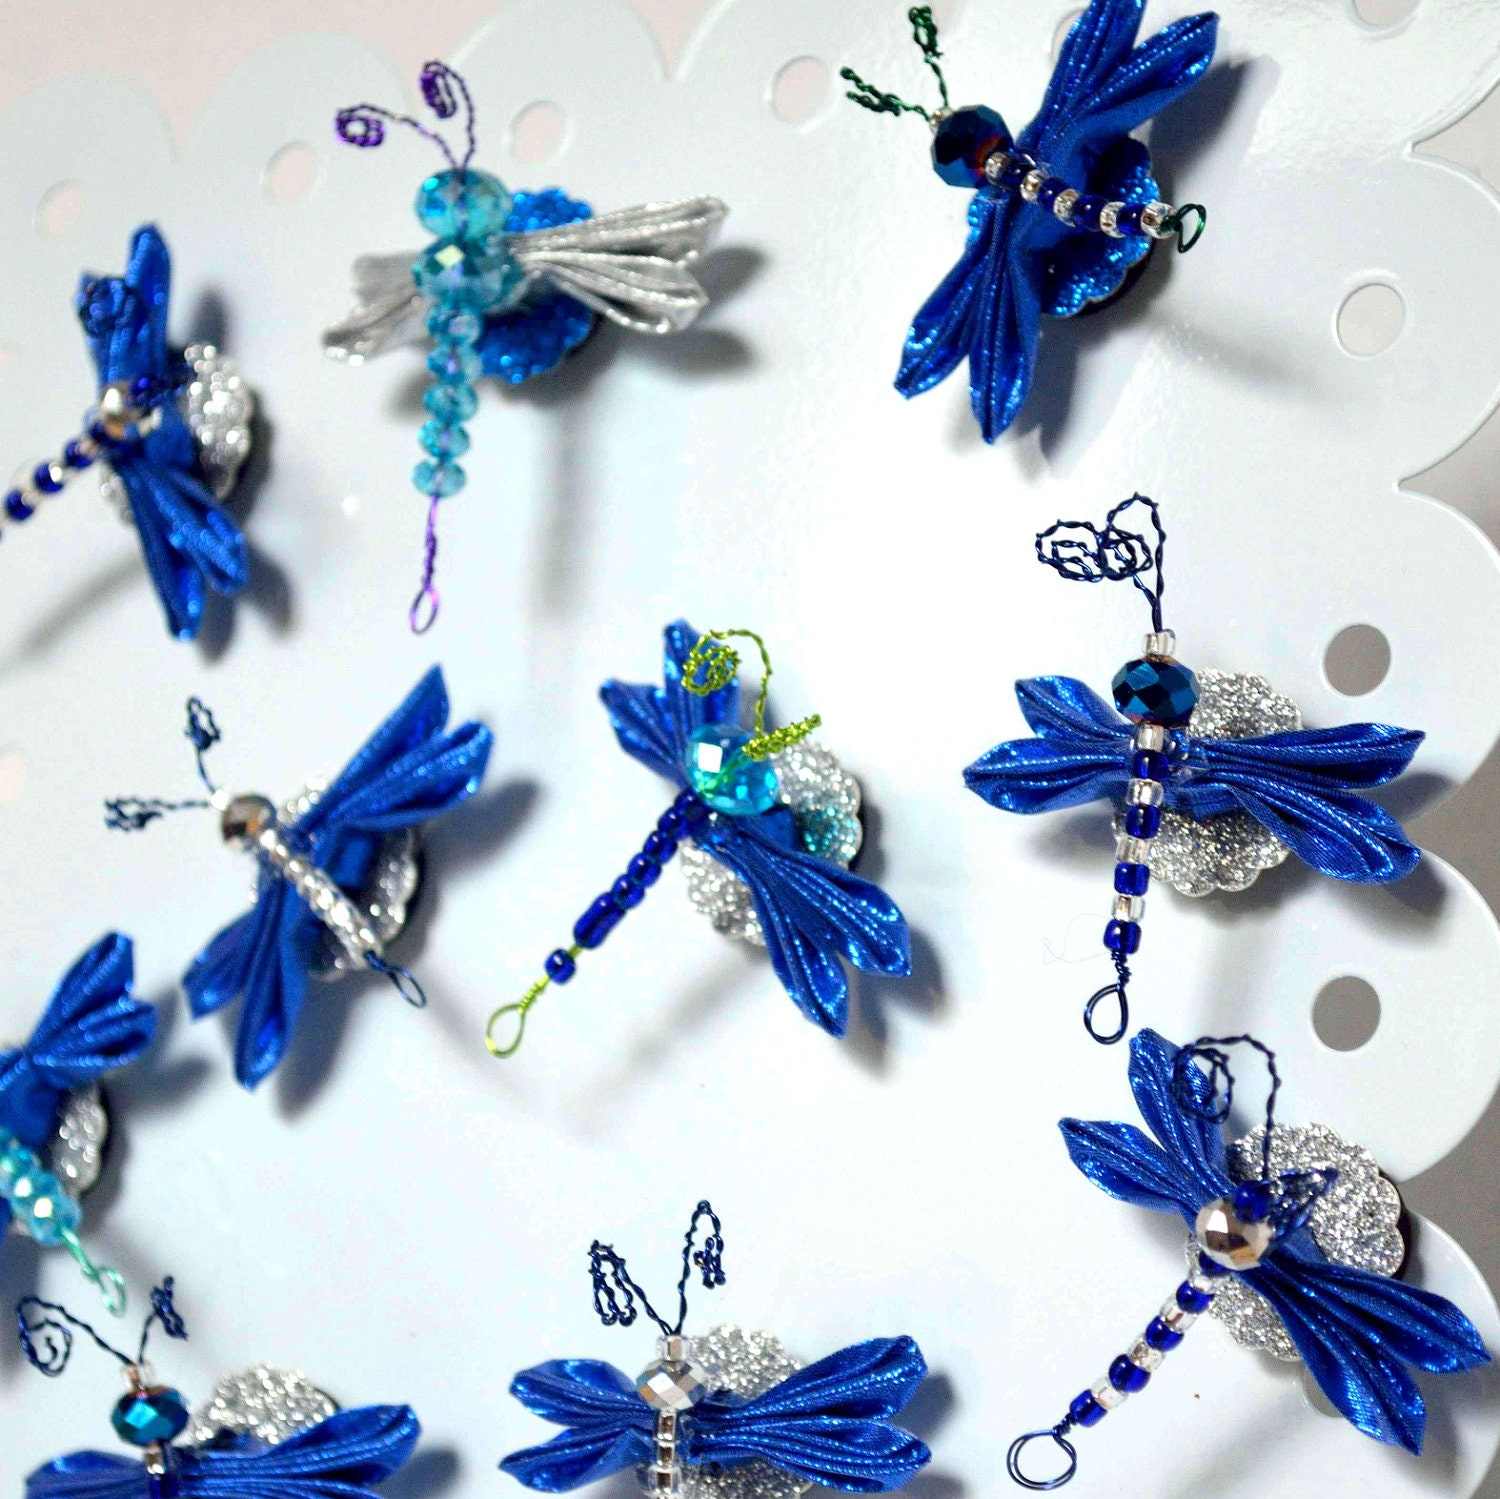 Holiday Bugs Hanukkah Bugs Blue Silver Kanzashi Dragonfly Magnets M201 - fostersbeauties